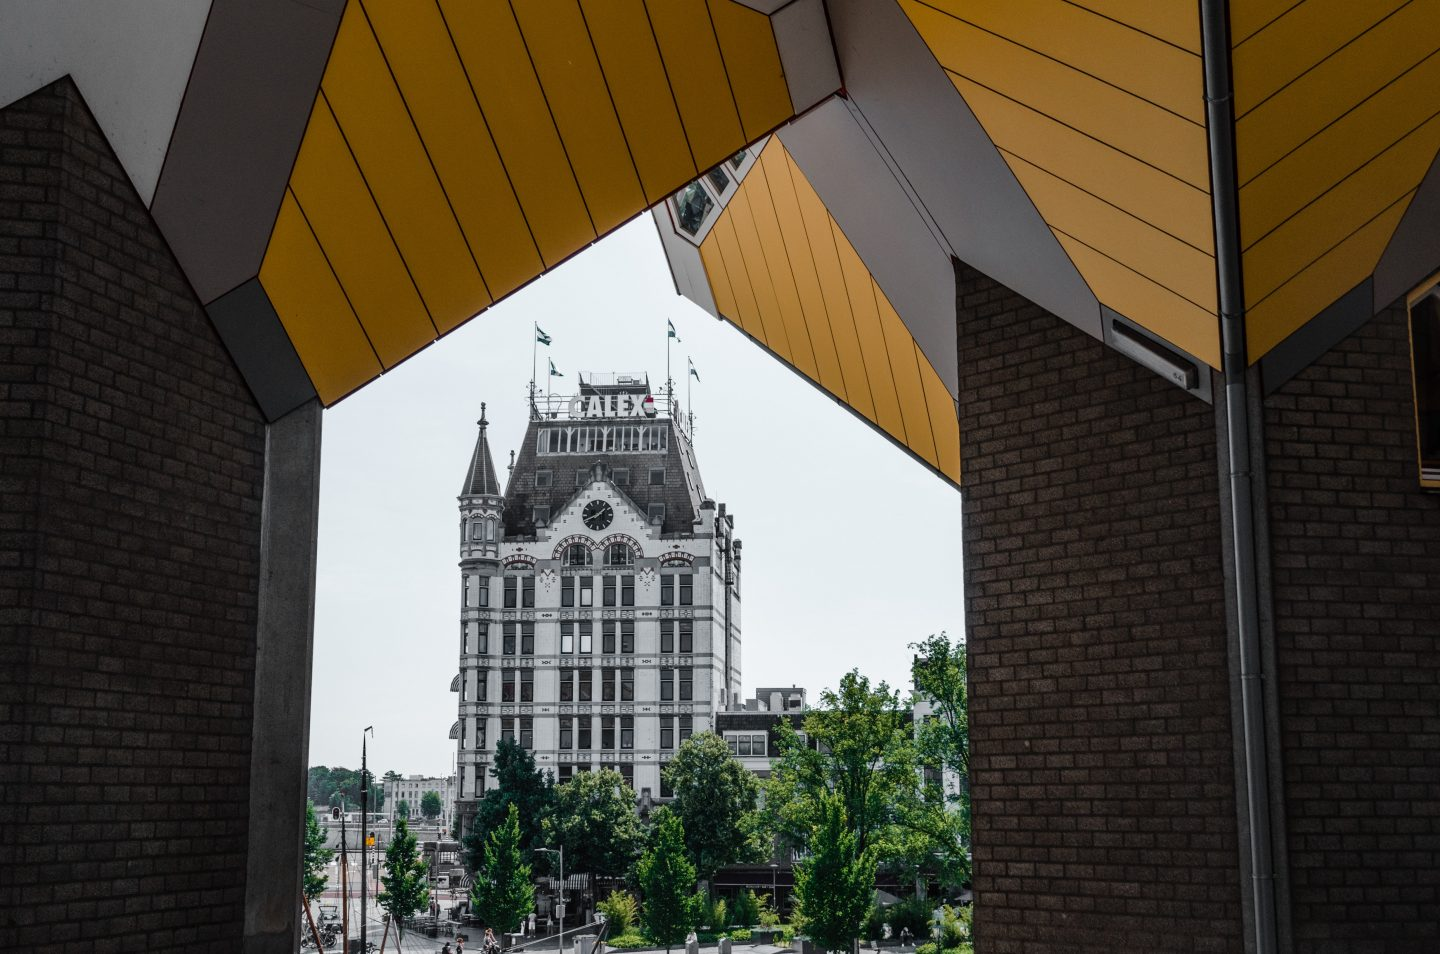 One day guide to Rotterdam